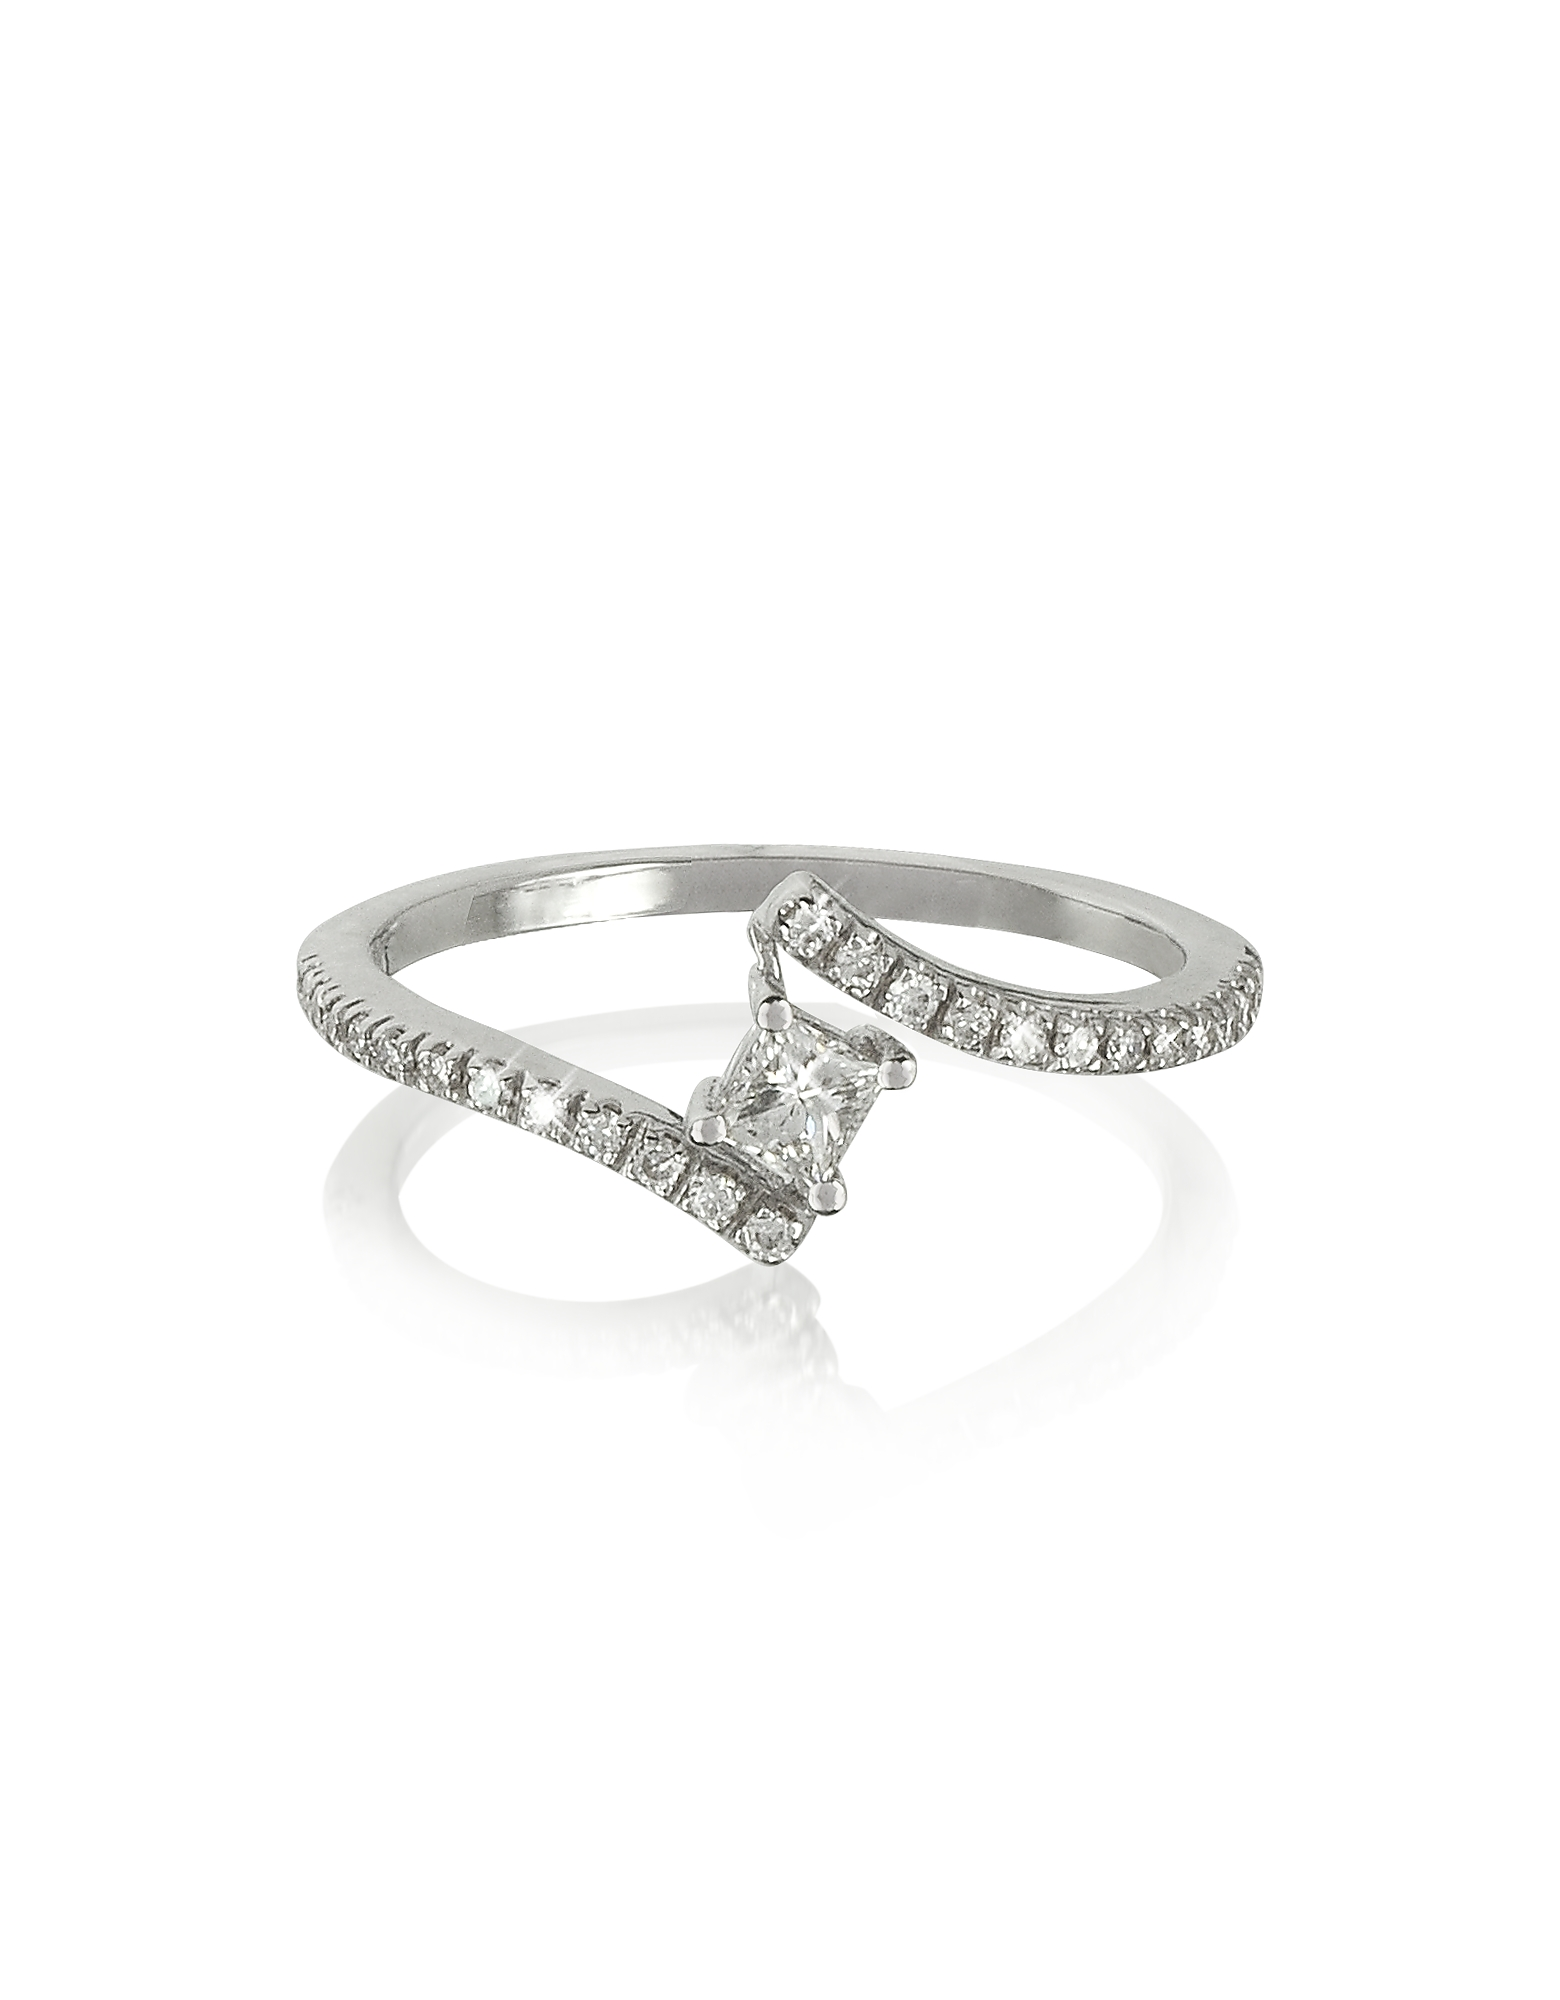 Forzieri Rings, Squared Diamond 18K White Gold Solitaire Ring